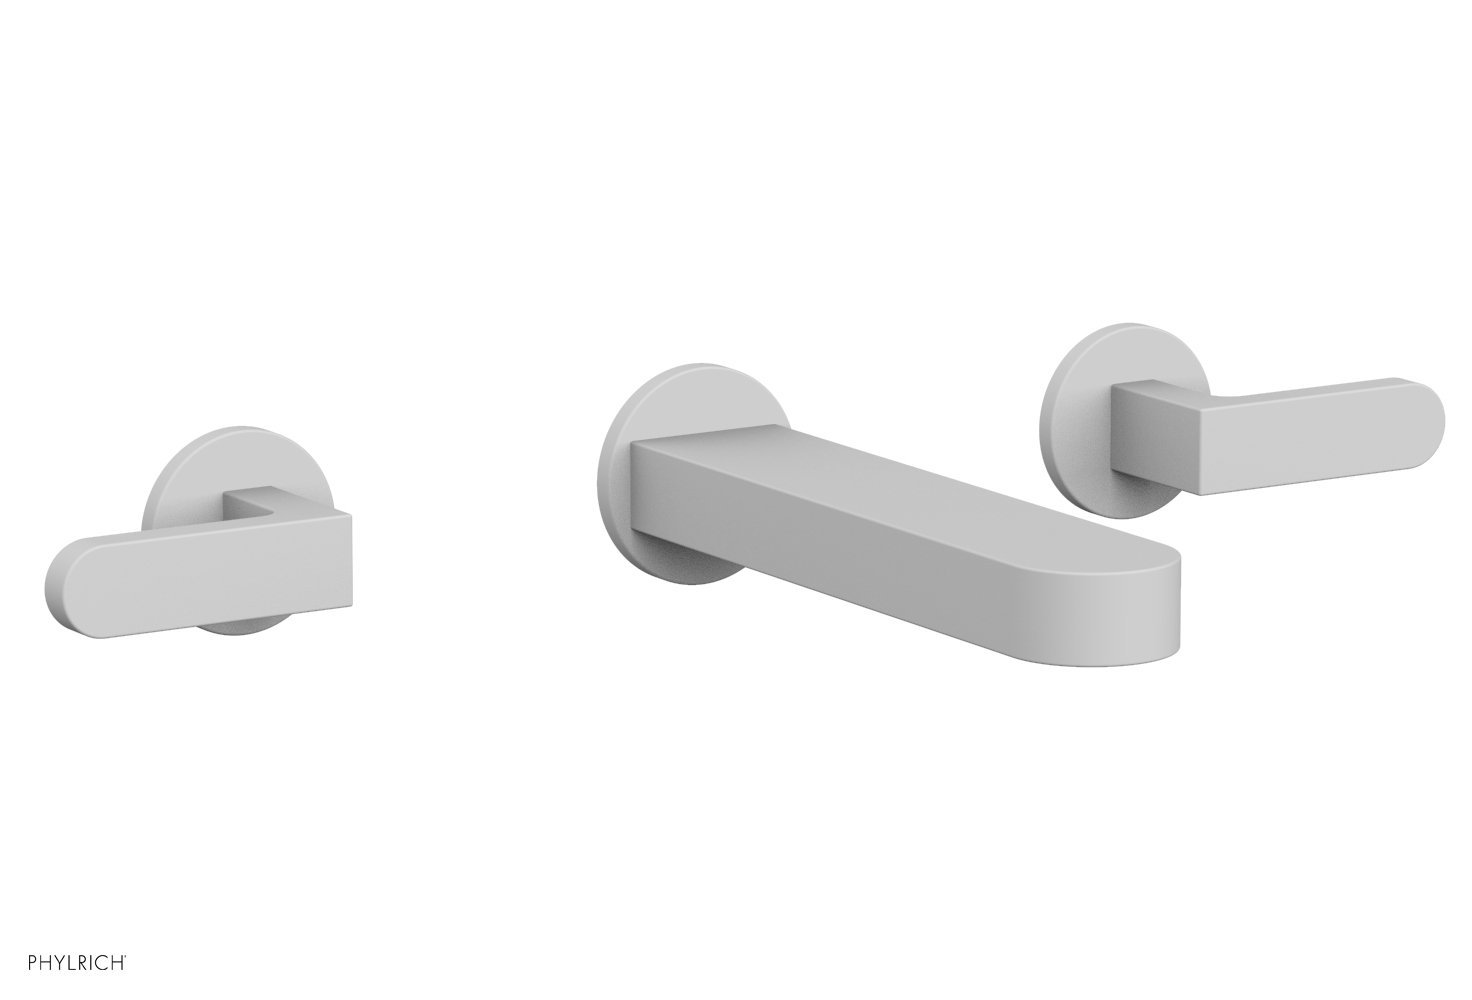 Phylrich 183-12-050 ROND Wall Lavatory Set - Lever Handles - Satin White